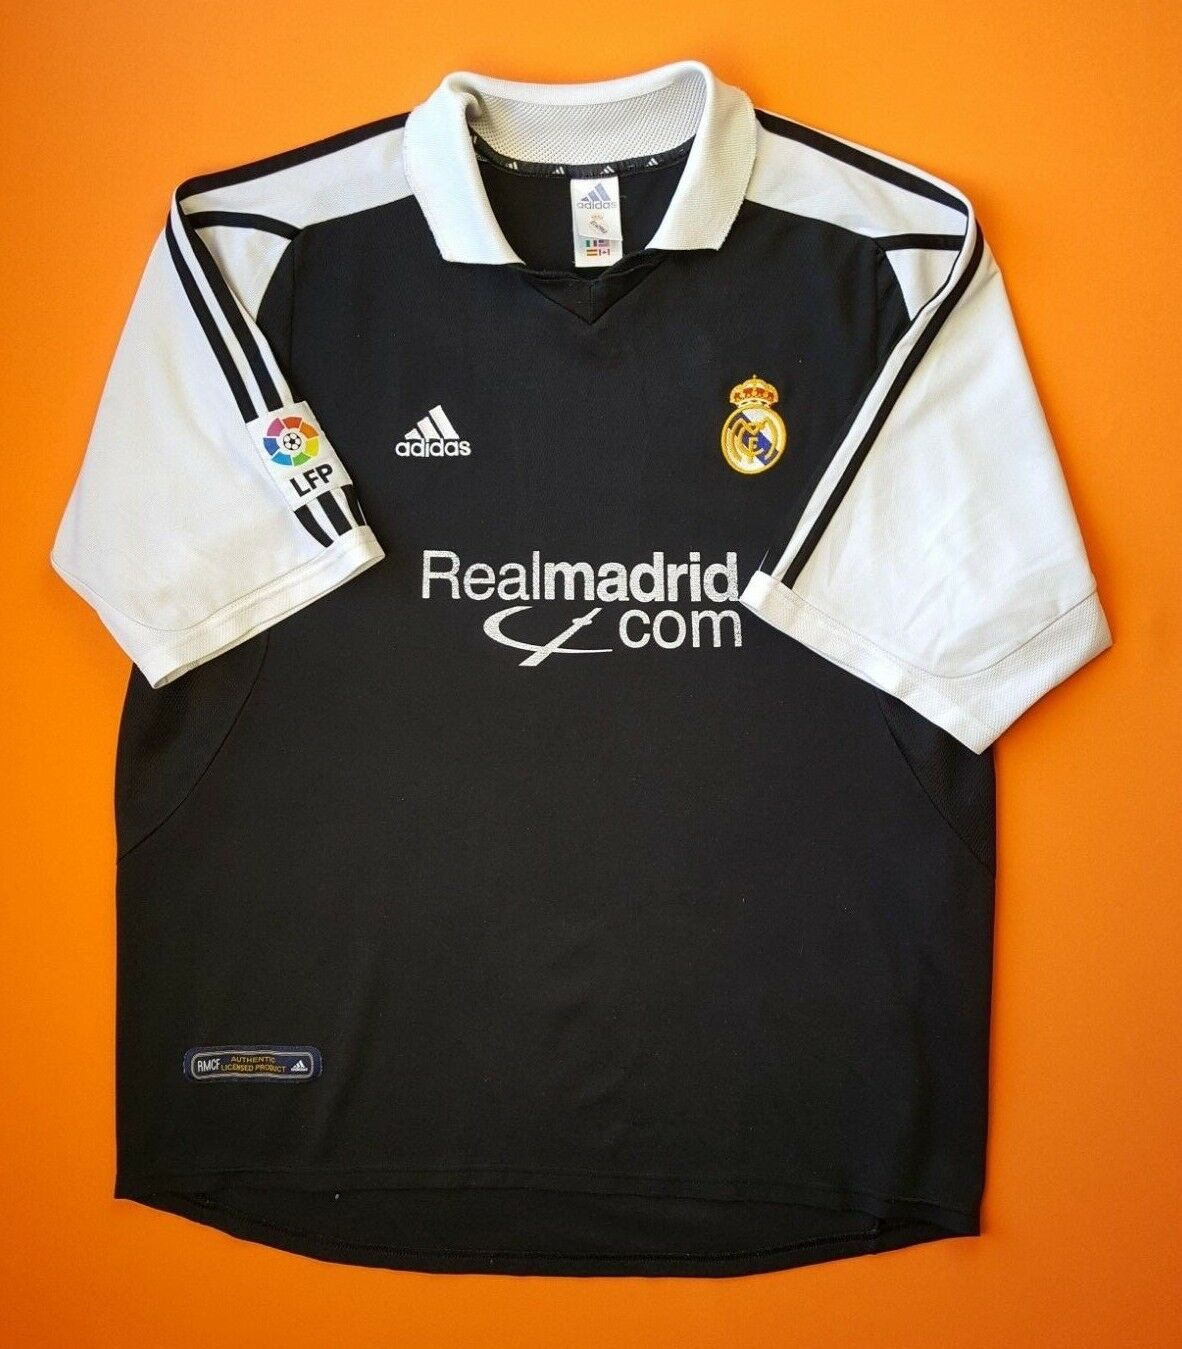 f638fdf21f7 4 5 Real Madrid jersey XL 2001 2002 away shirt soccer football Adidas